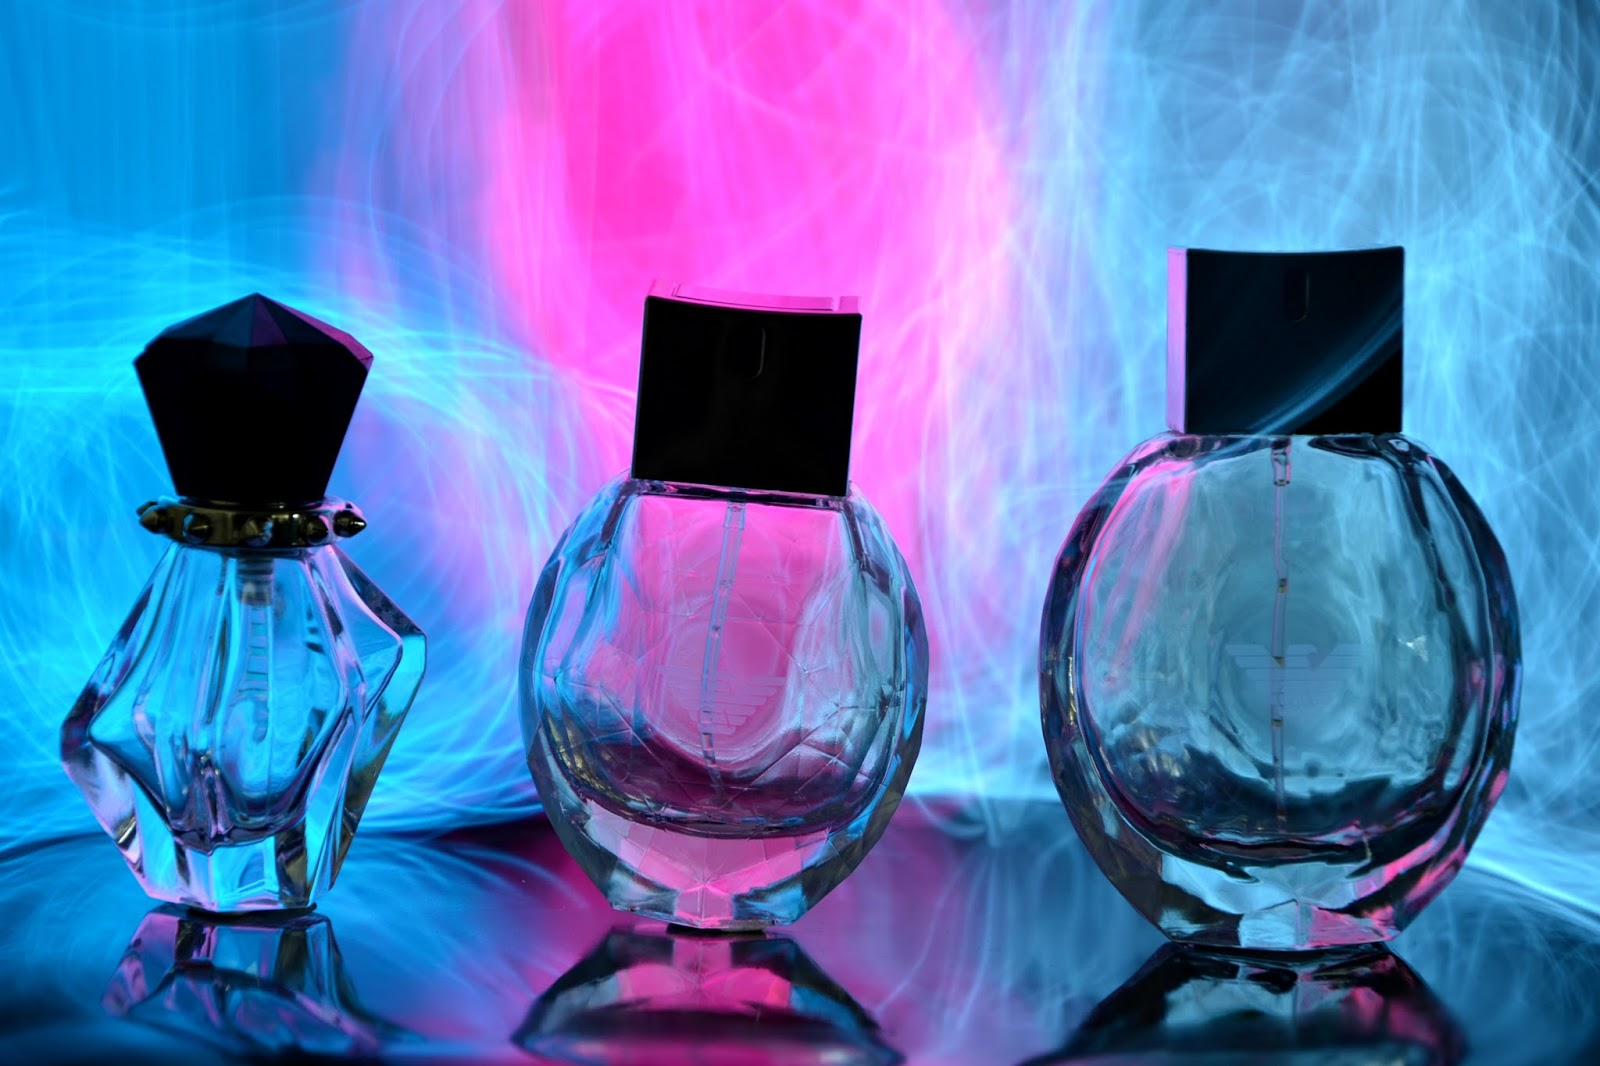 Paiting A Colourful Background with Lights Empty Perfume Bottles